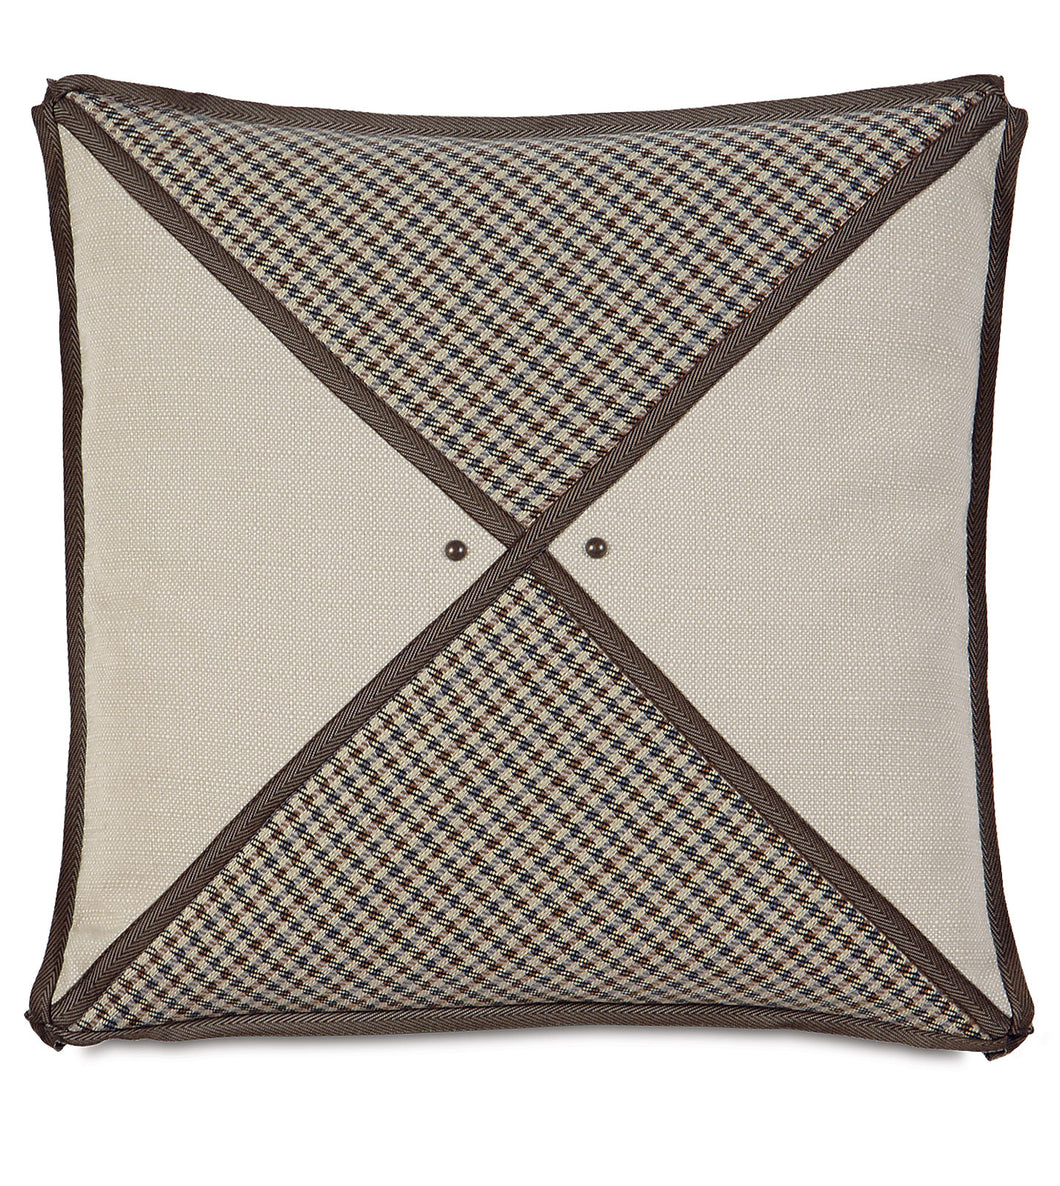 Beige Houndstooth Mountain Lodge Studded Throw Pillow 20